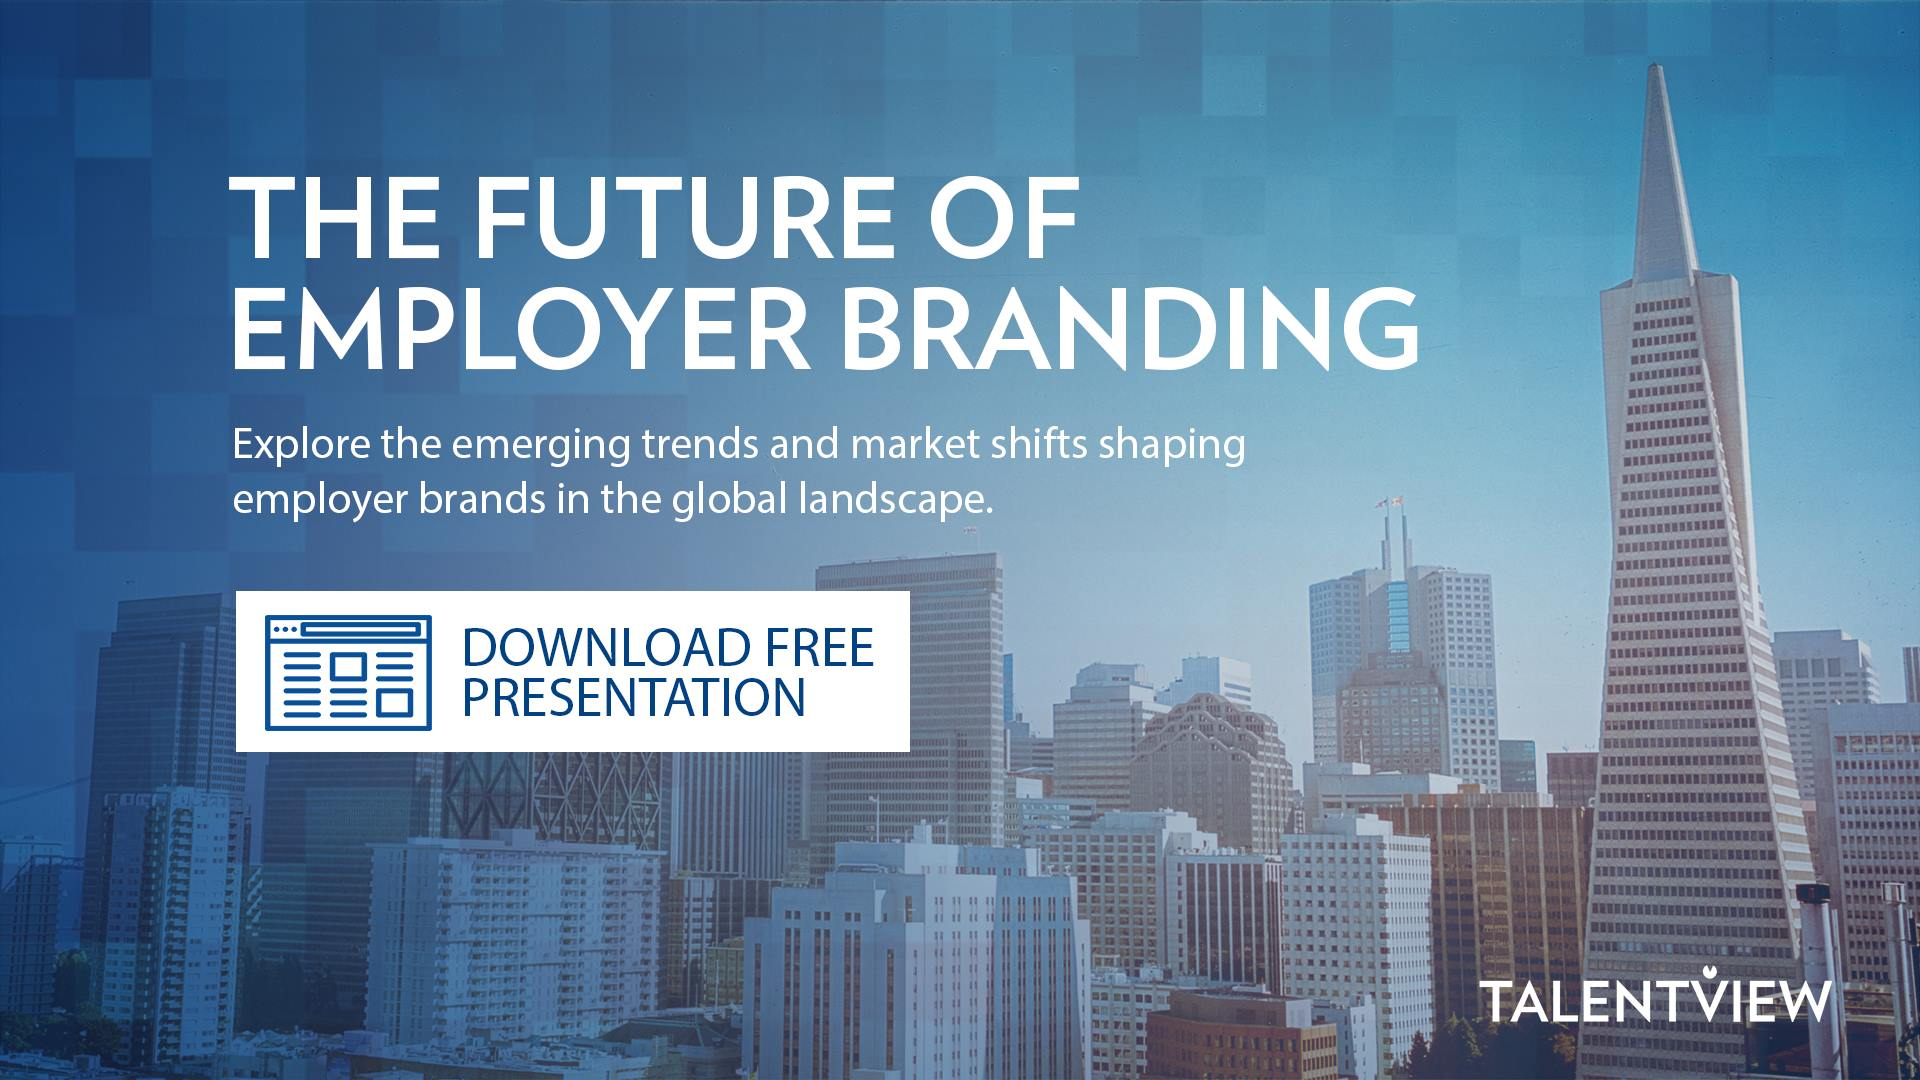 The Future of Employer Branding